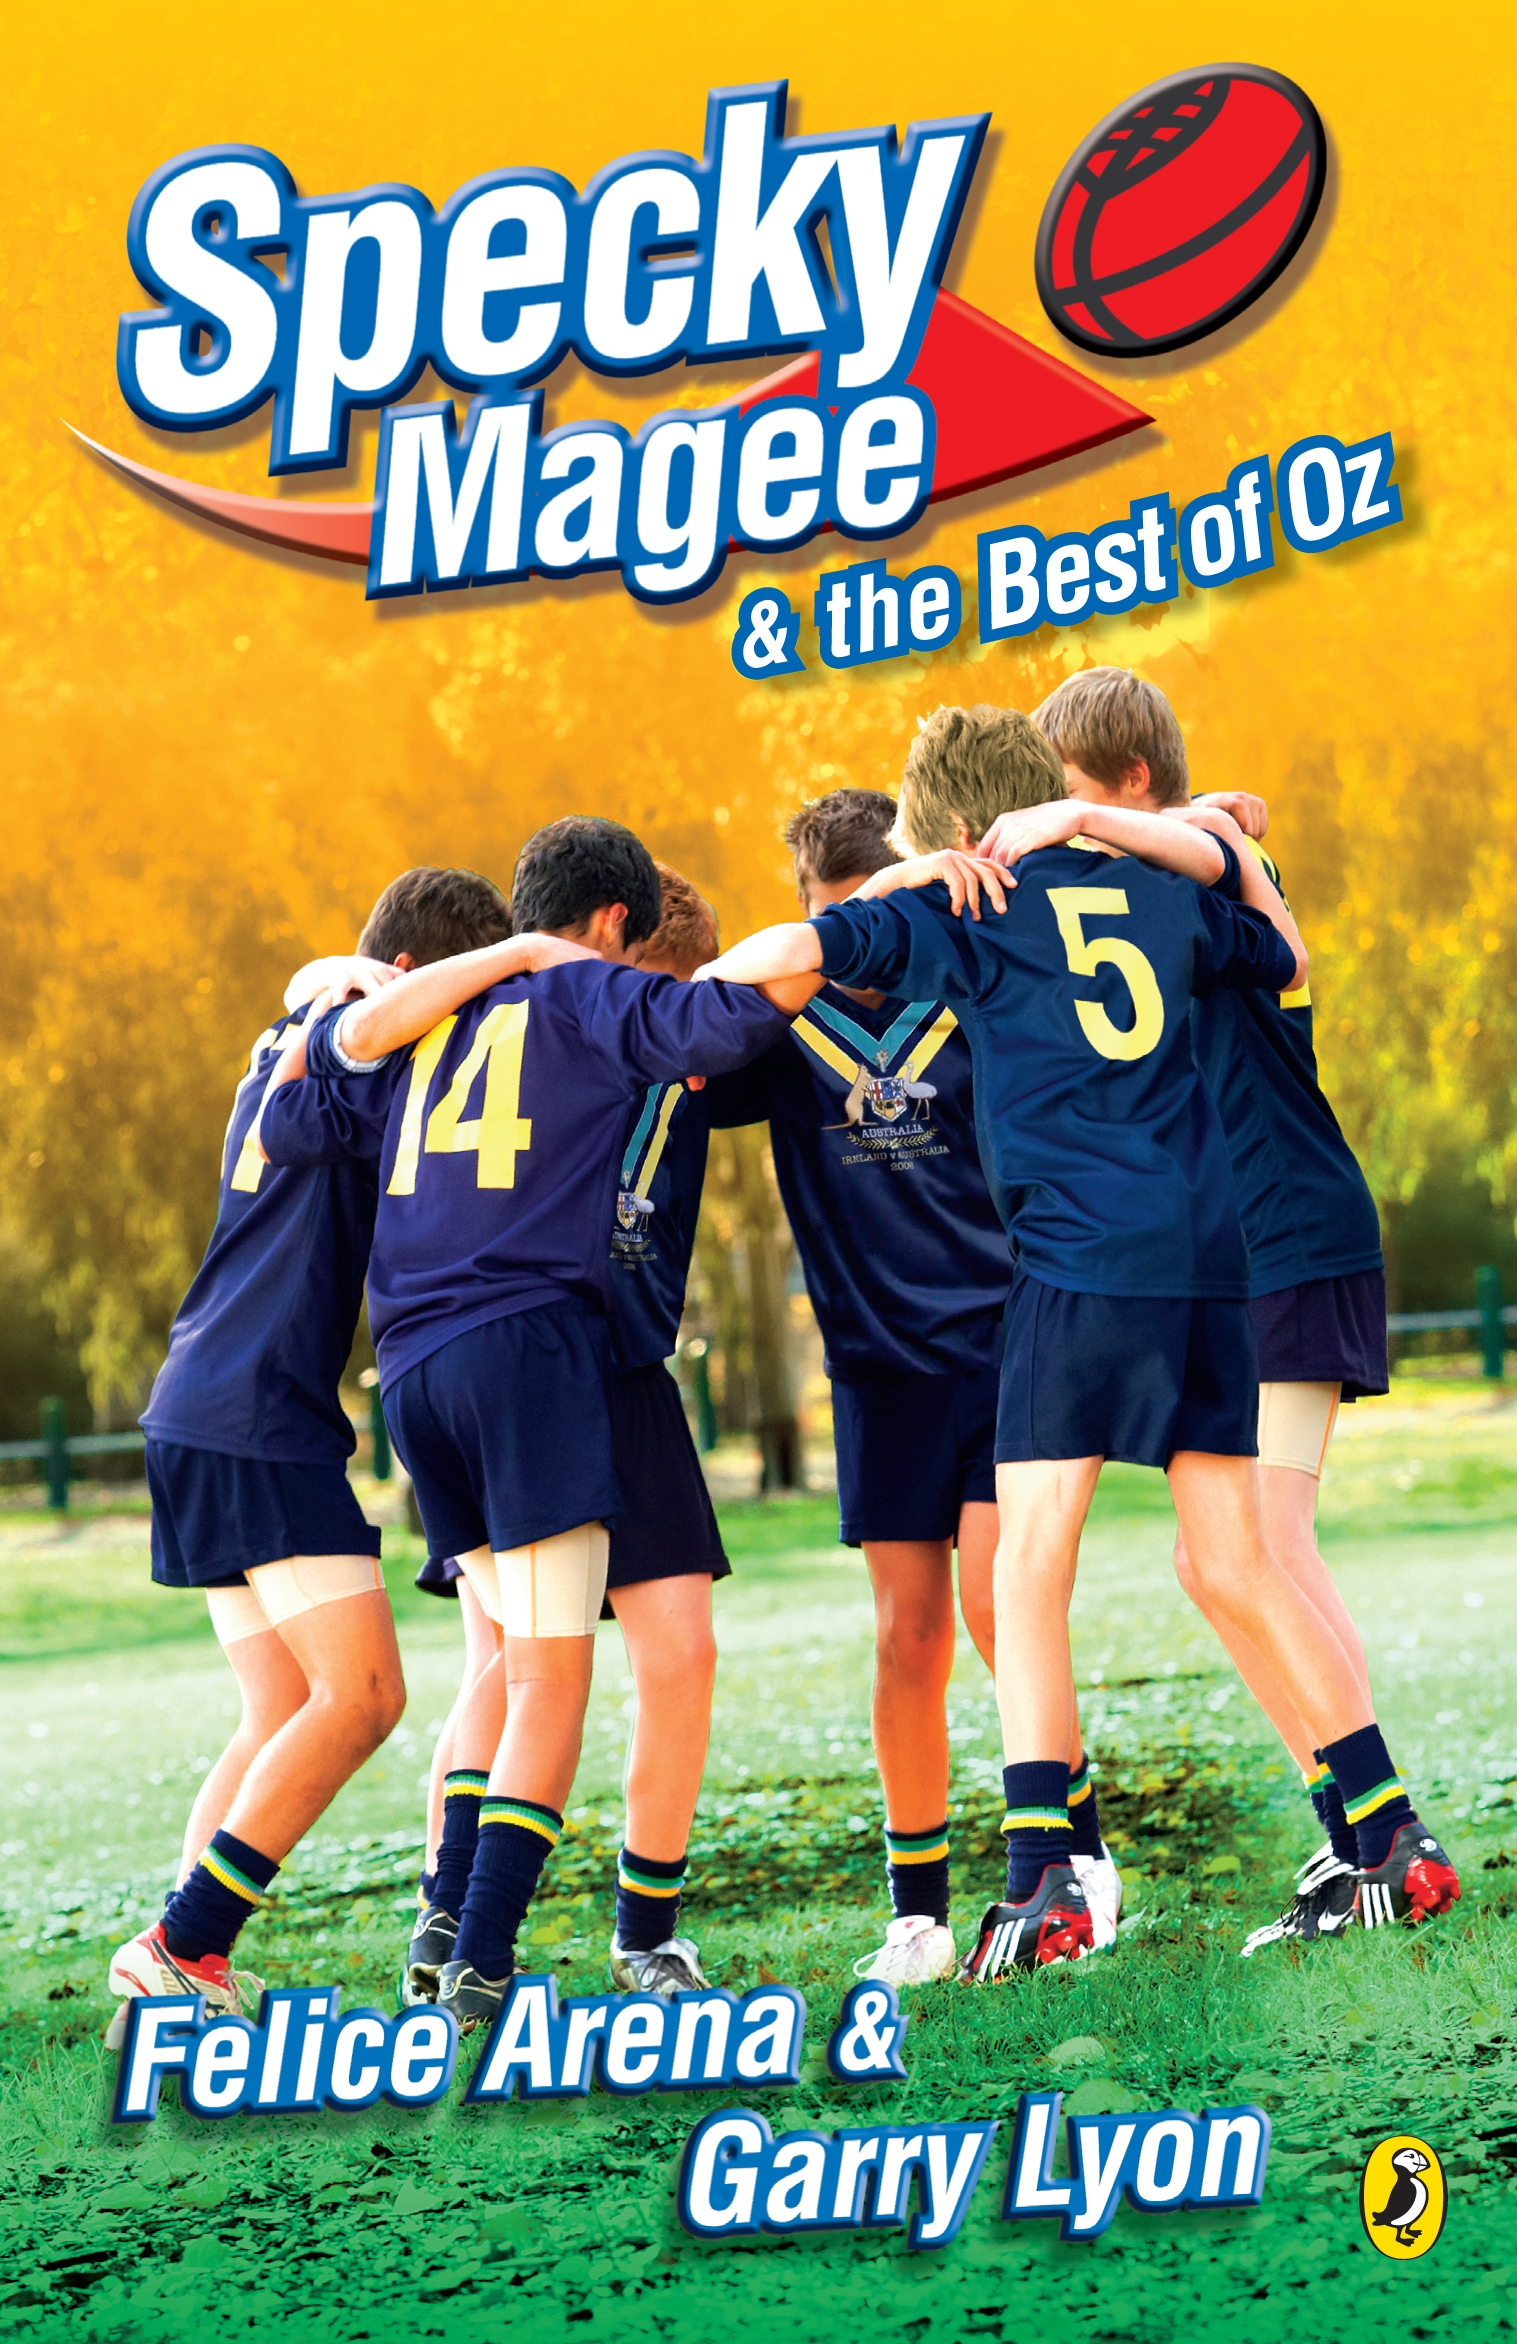 Specky Magee and the Best of Oz by Felice Arena & Garry Lyon, ISBN: 9780143304678